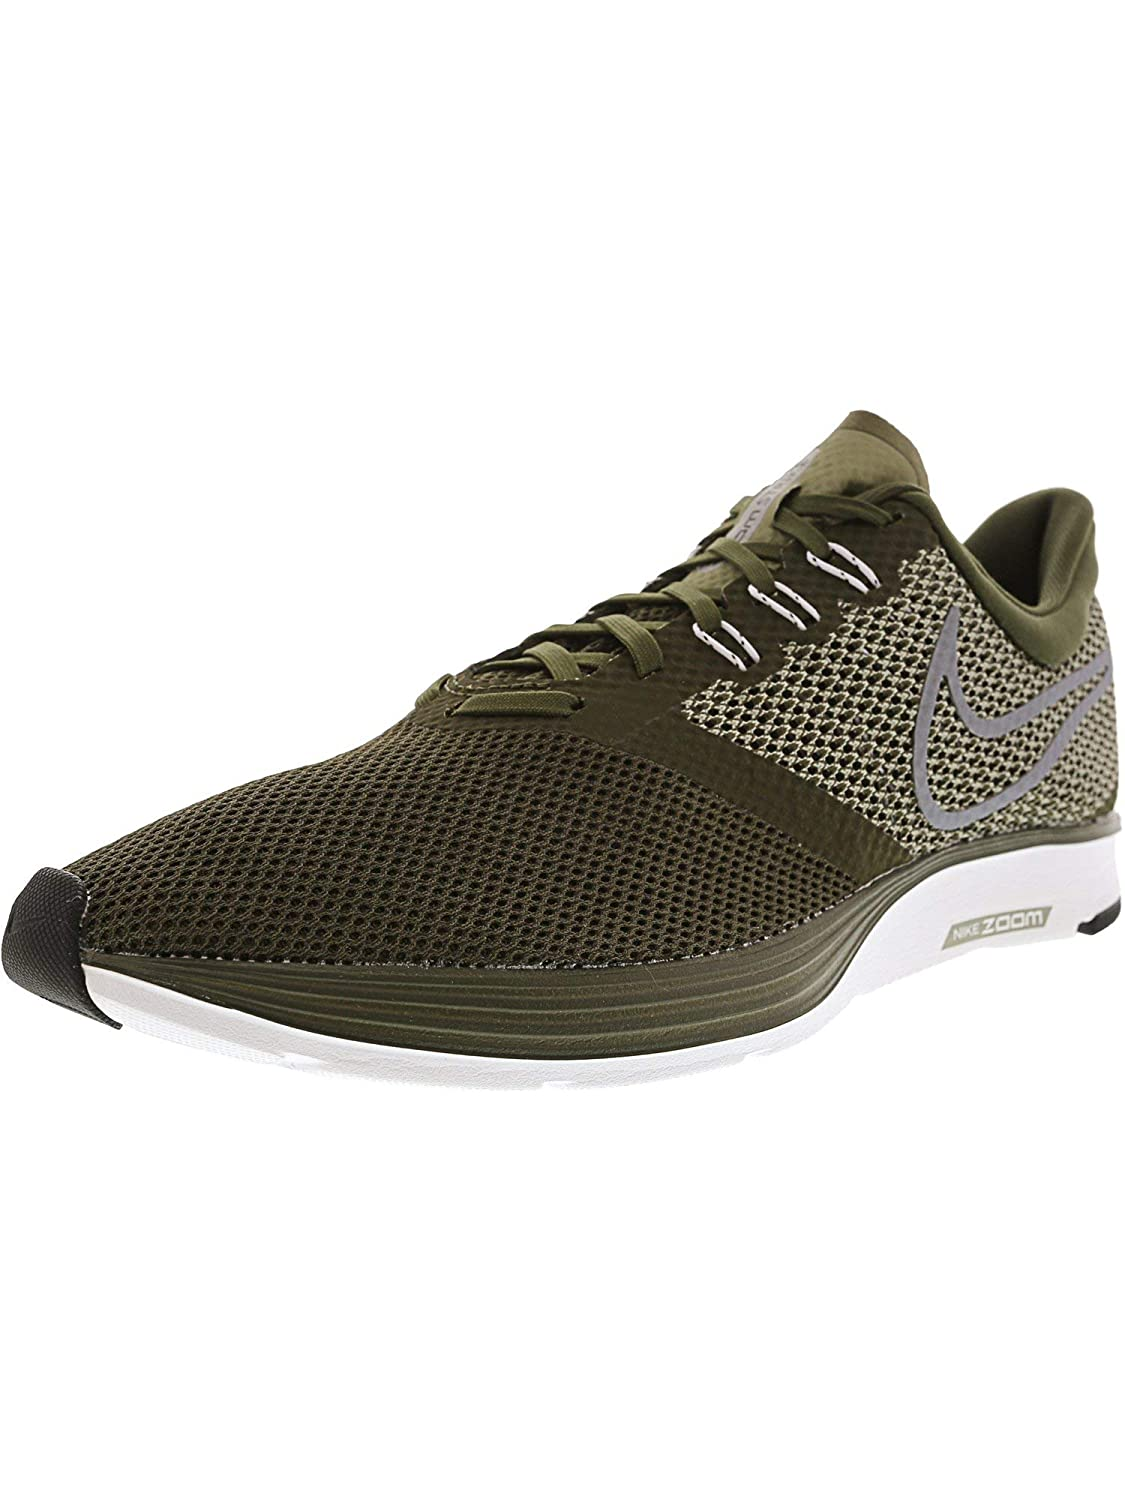 17a3ebec247f8 Nike Zoom Strike Men s Running Shoe  Buy Online at Low Prices in India -  Amazon.in